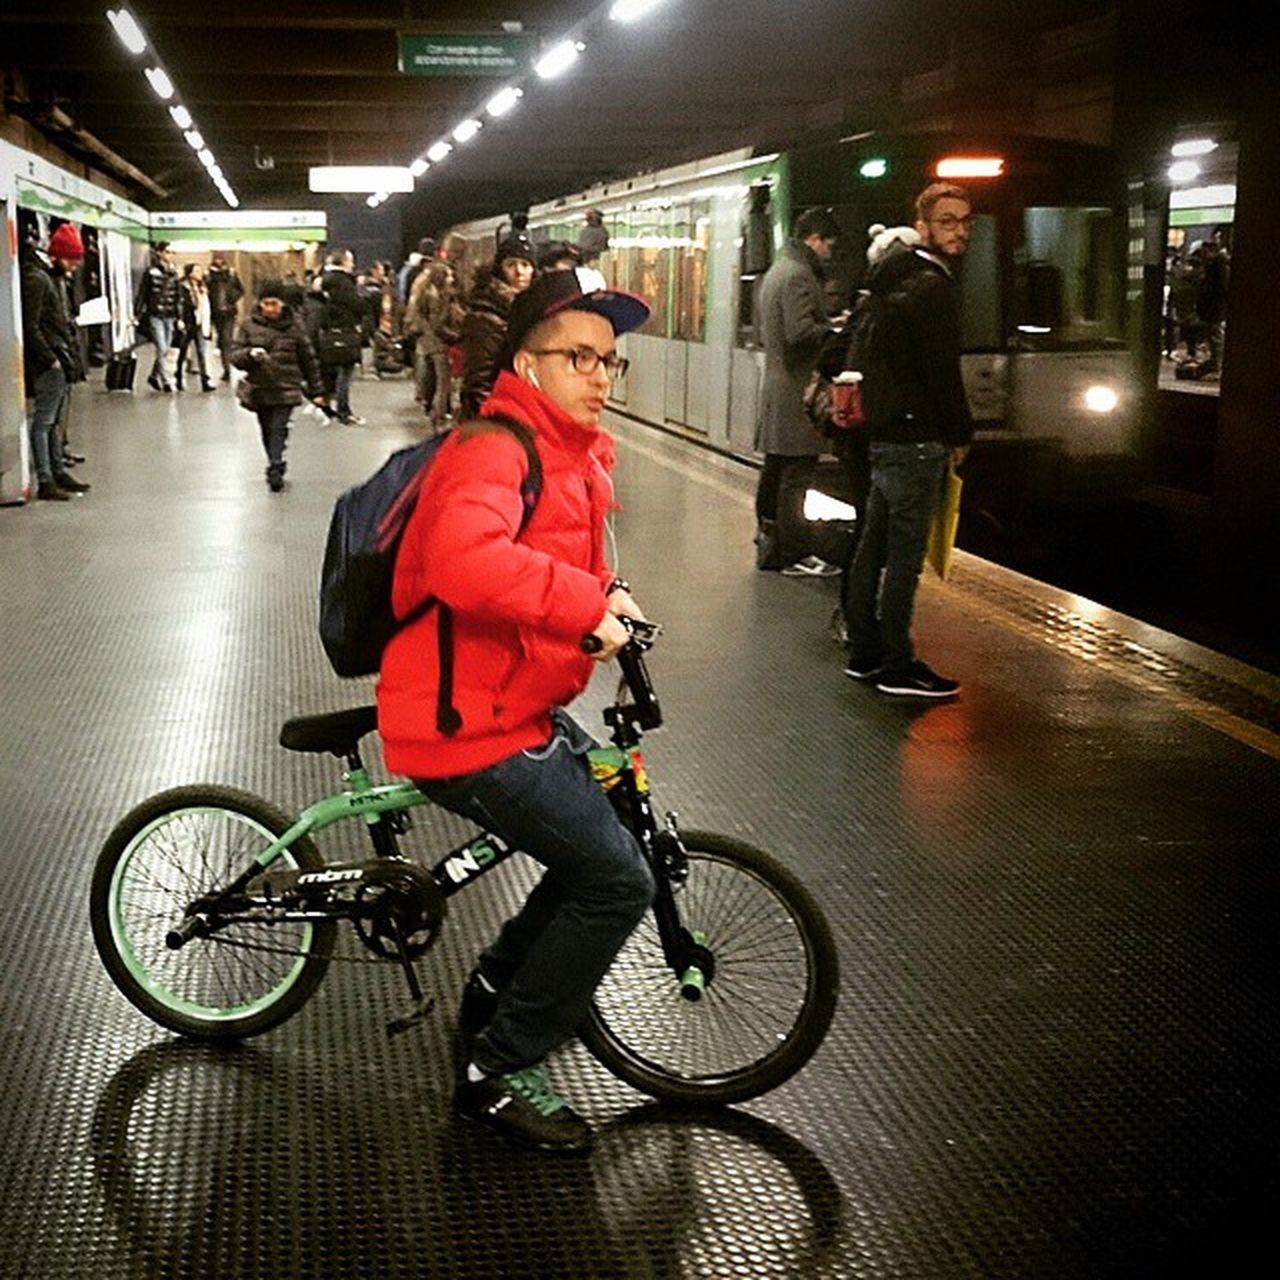 Bicycle Metro Red Young Milan Pictureoftheday Followme Milanocityufficiale